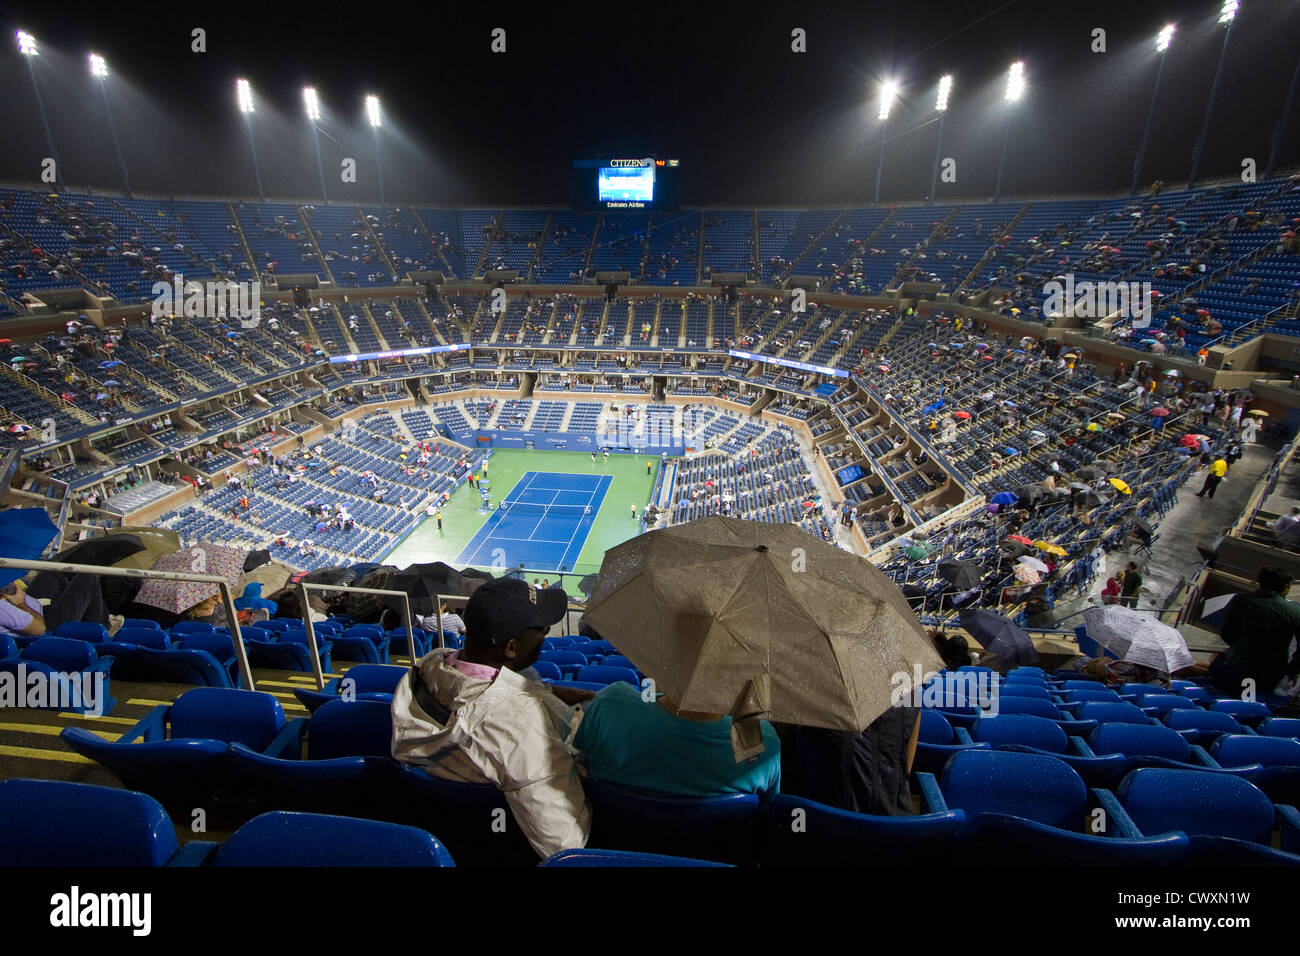 Arthur Ashe Stadium during a night session at the 2012 US Open tennis tournament. Taken during Andy Roddick's - Stock Image